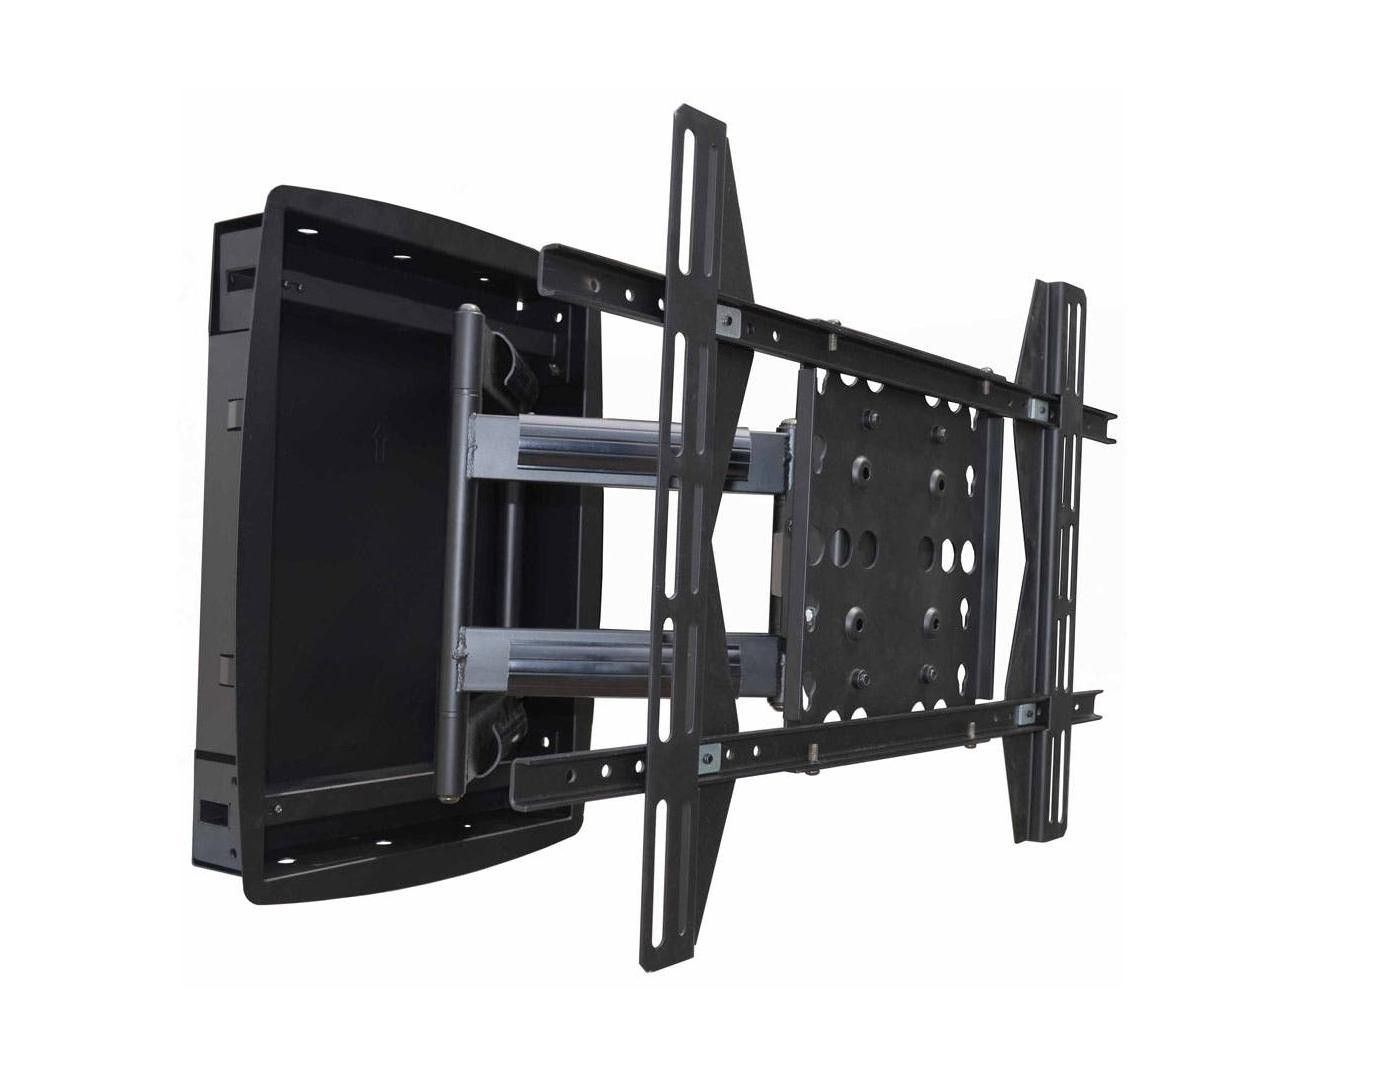 Monoprice Recessed Full Motion Articulating Tv Wall Mount Bracket For Tvs 42in To 63in Max Weight 200lbs Vesa Patterns Up To 800x500 In 2020 Wall Mounted Tv Tv Wall Mount Bracket